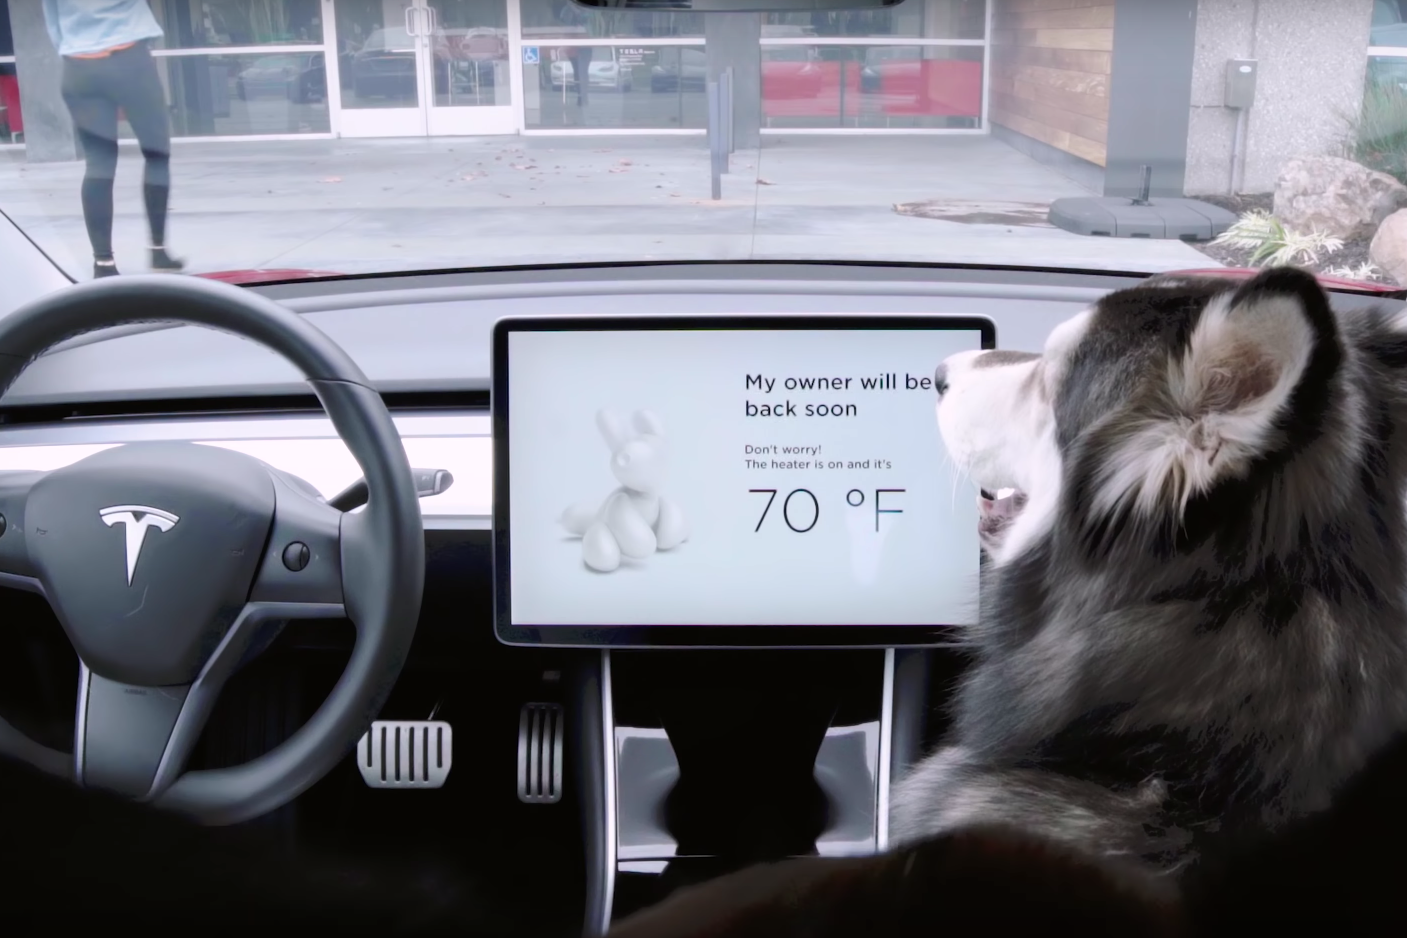 Tesla's New Modes Keep Dogs Cool, Owners' Cars Unstolen ...